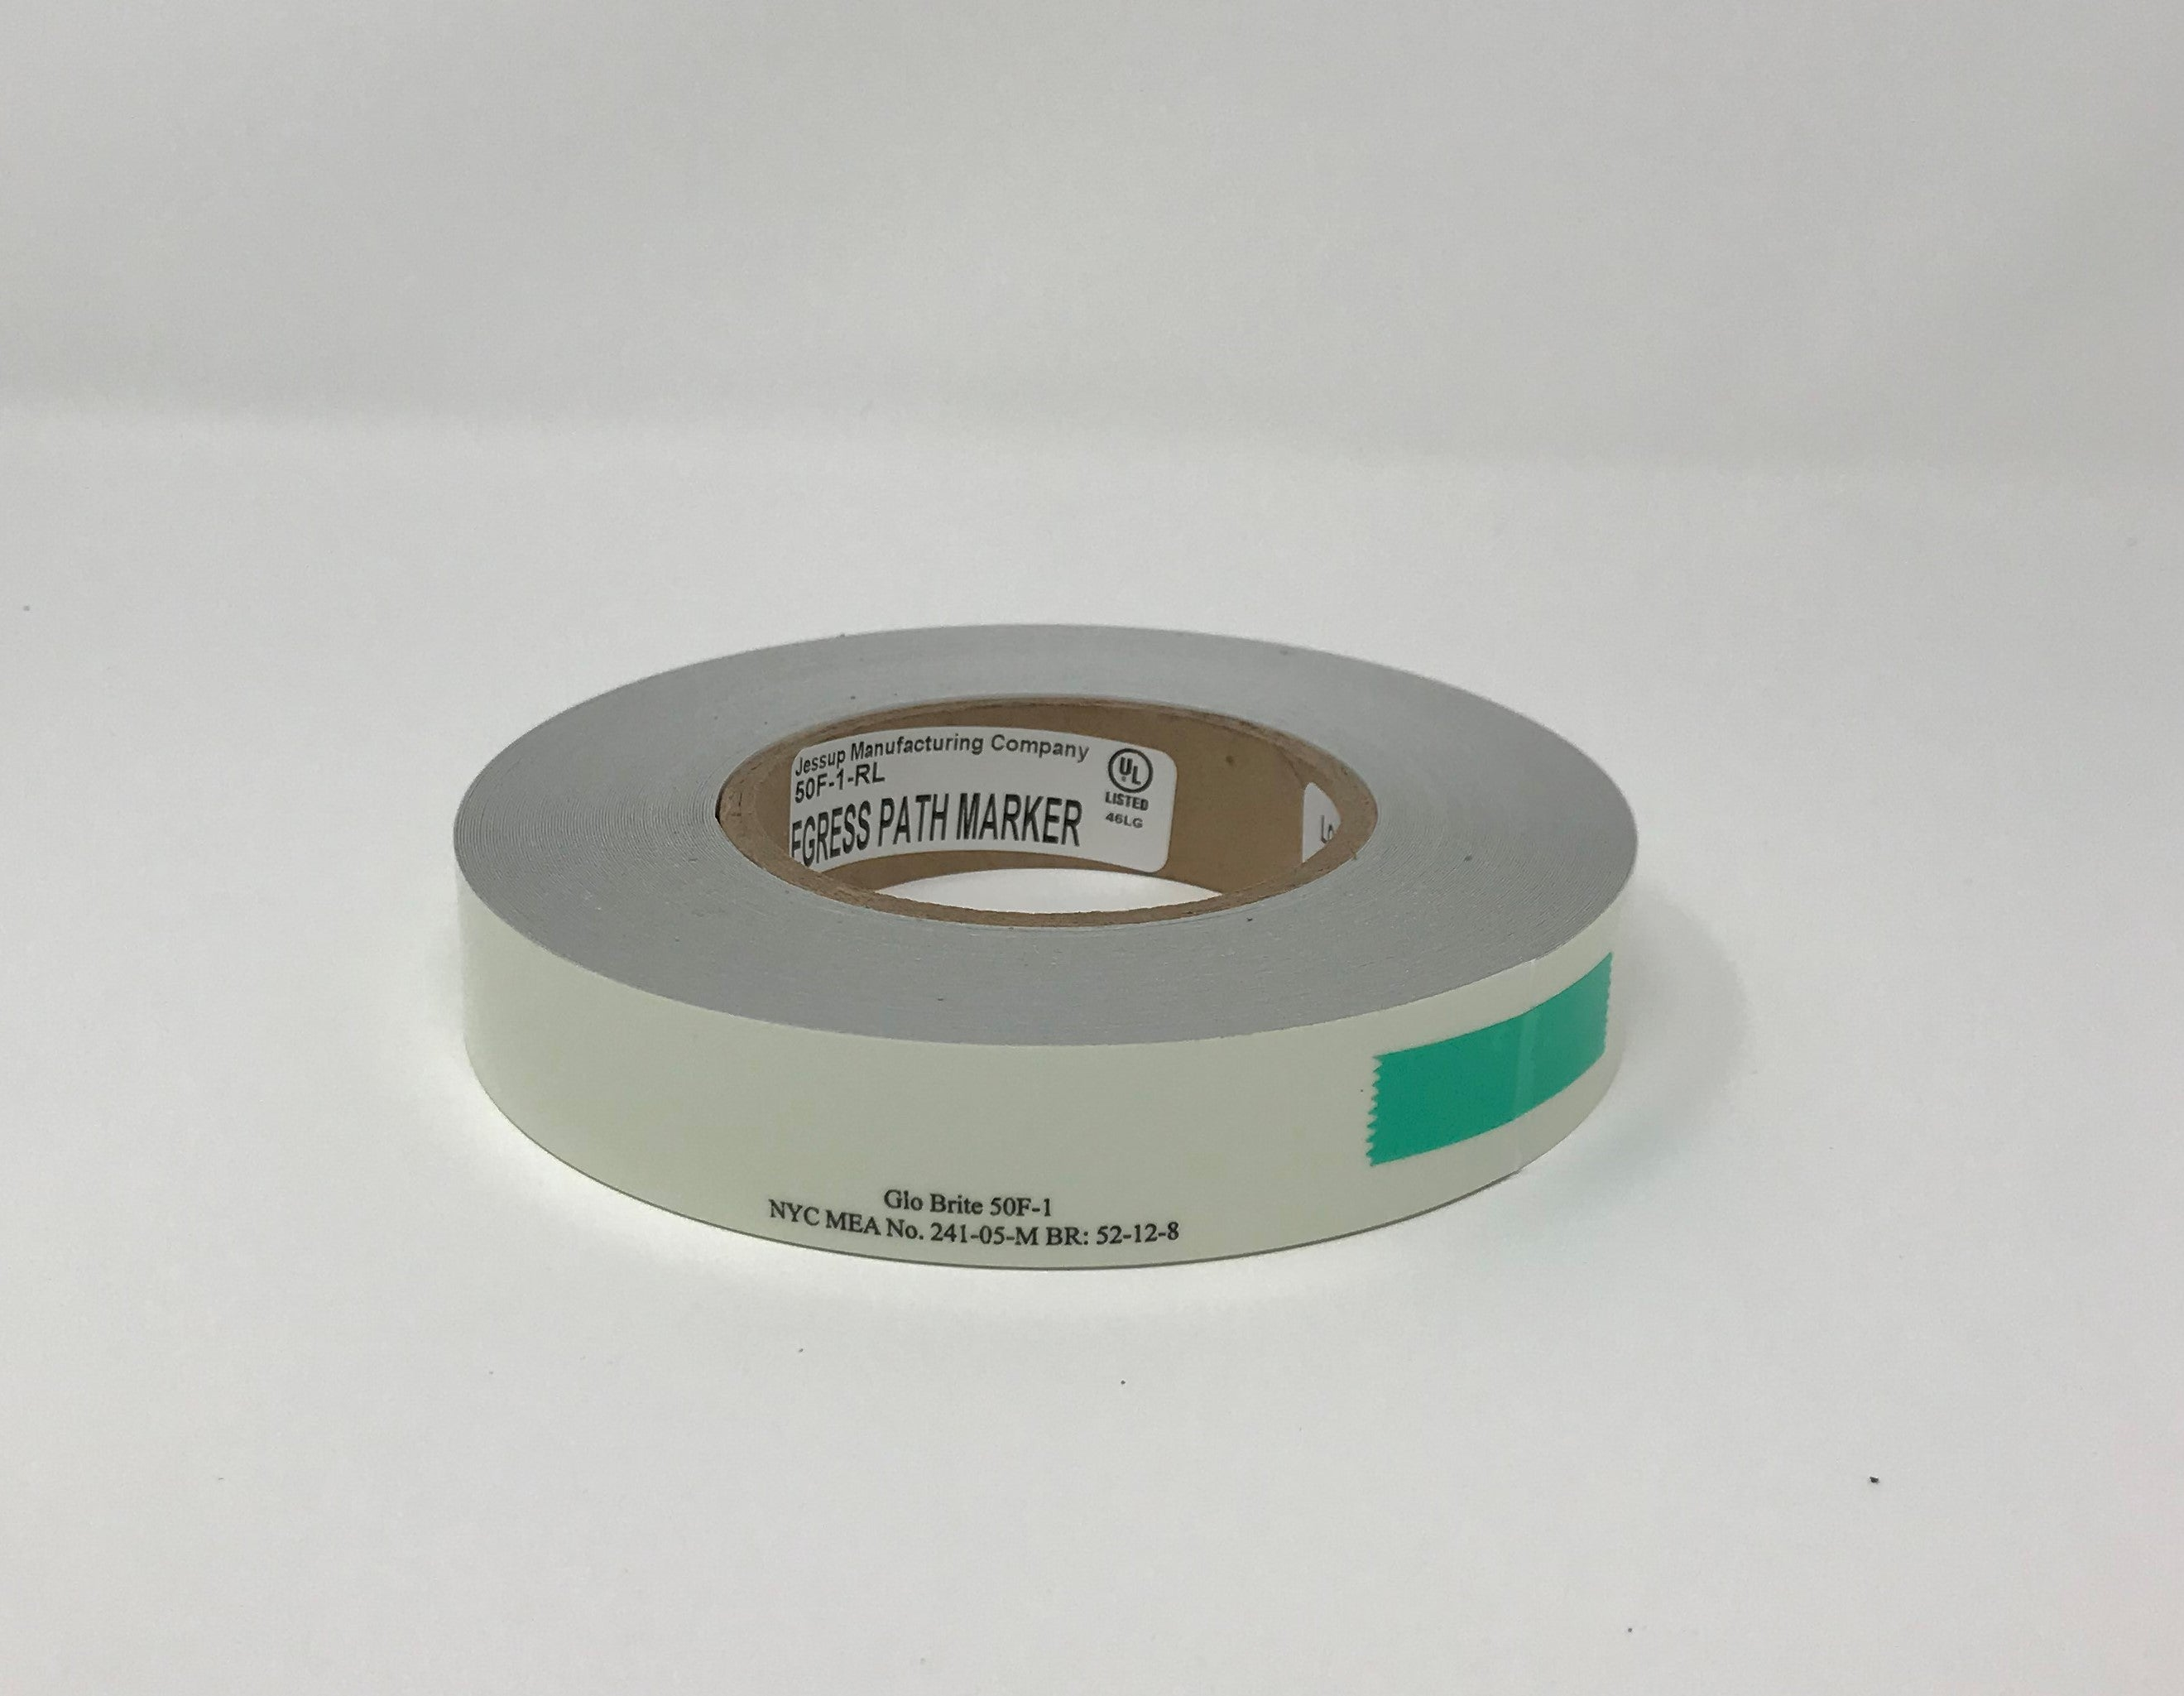 "1"" x 100' Roll GLOW IN THE DARK Emergency Egress Tape 50F-1 - Limited Stock"